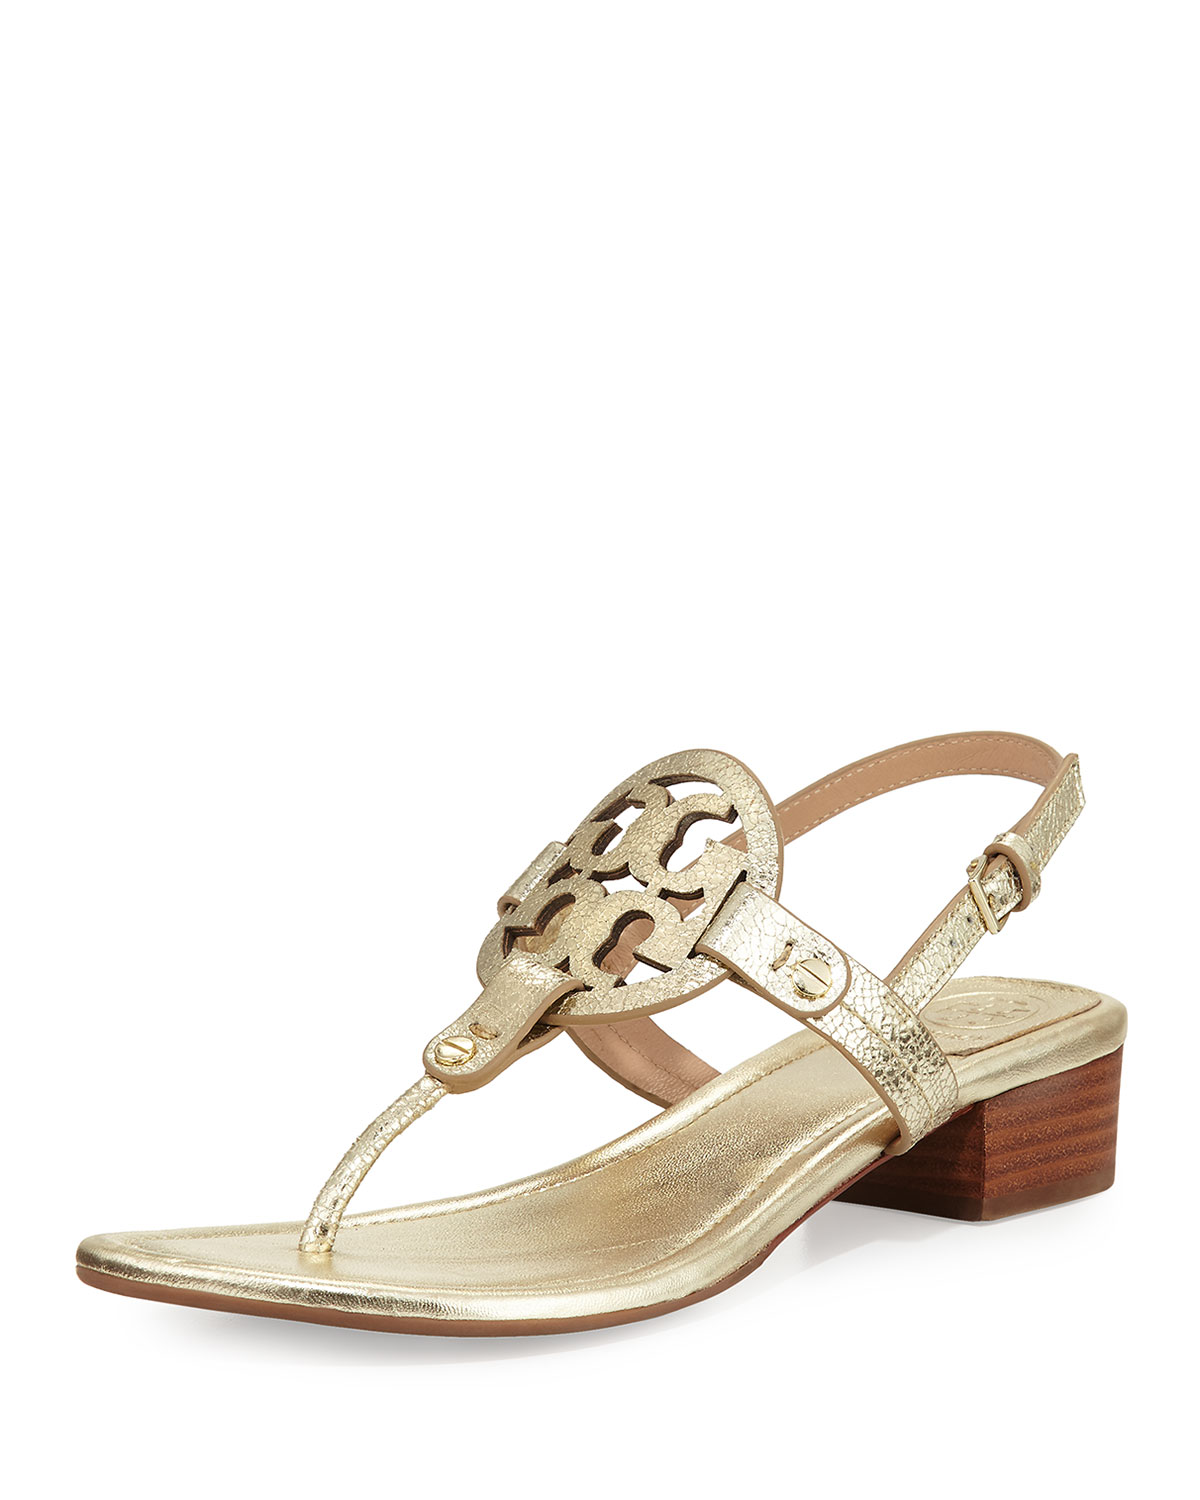 96fa5b3992dd Tory Burch Miller Metallic 30mm Thong Sandal